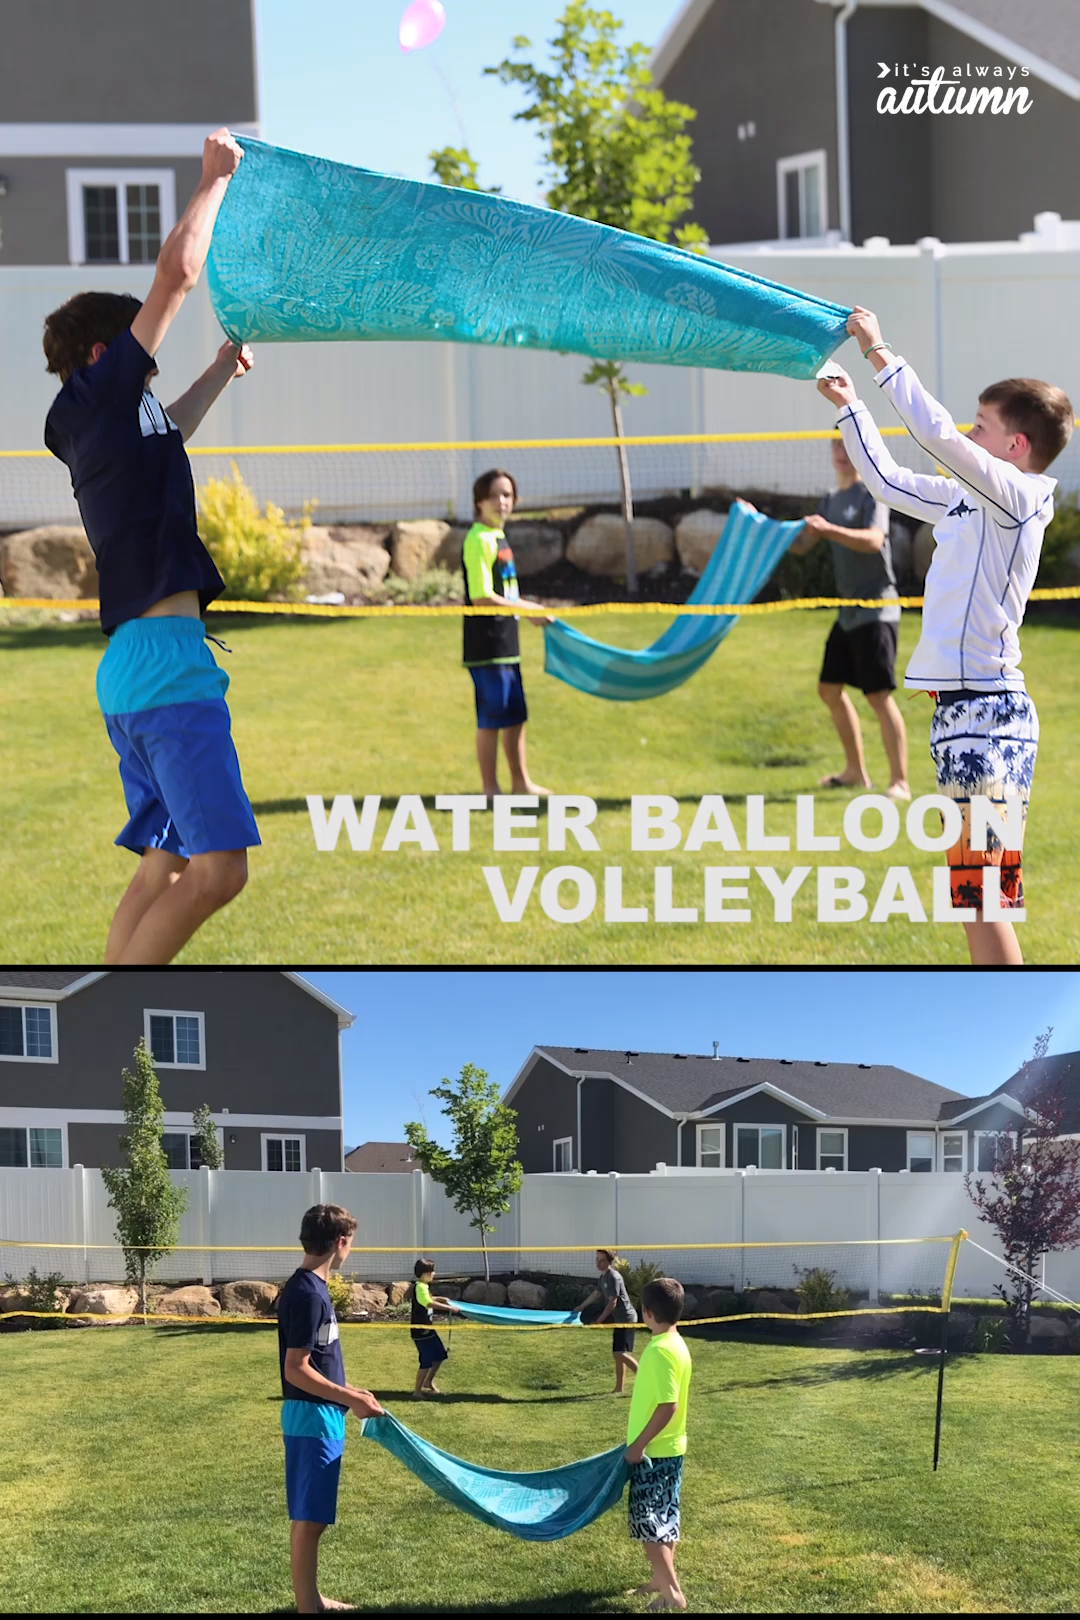 Water Balloon Volleyball In 2020 Water Games For Kids Water Games Youth Games